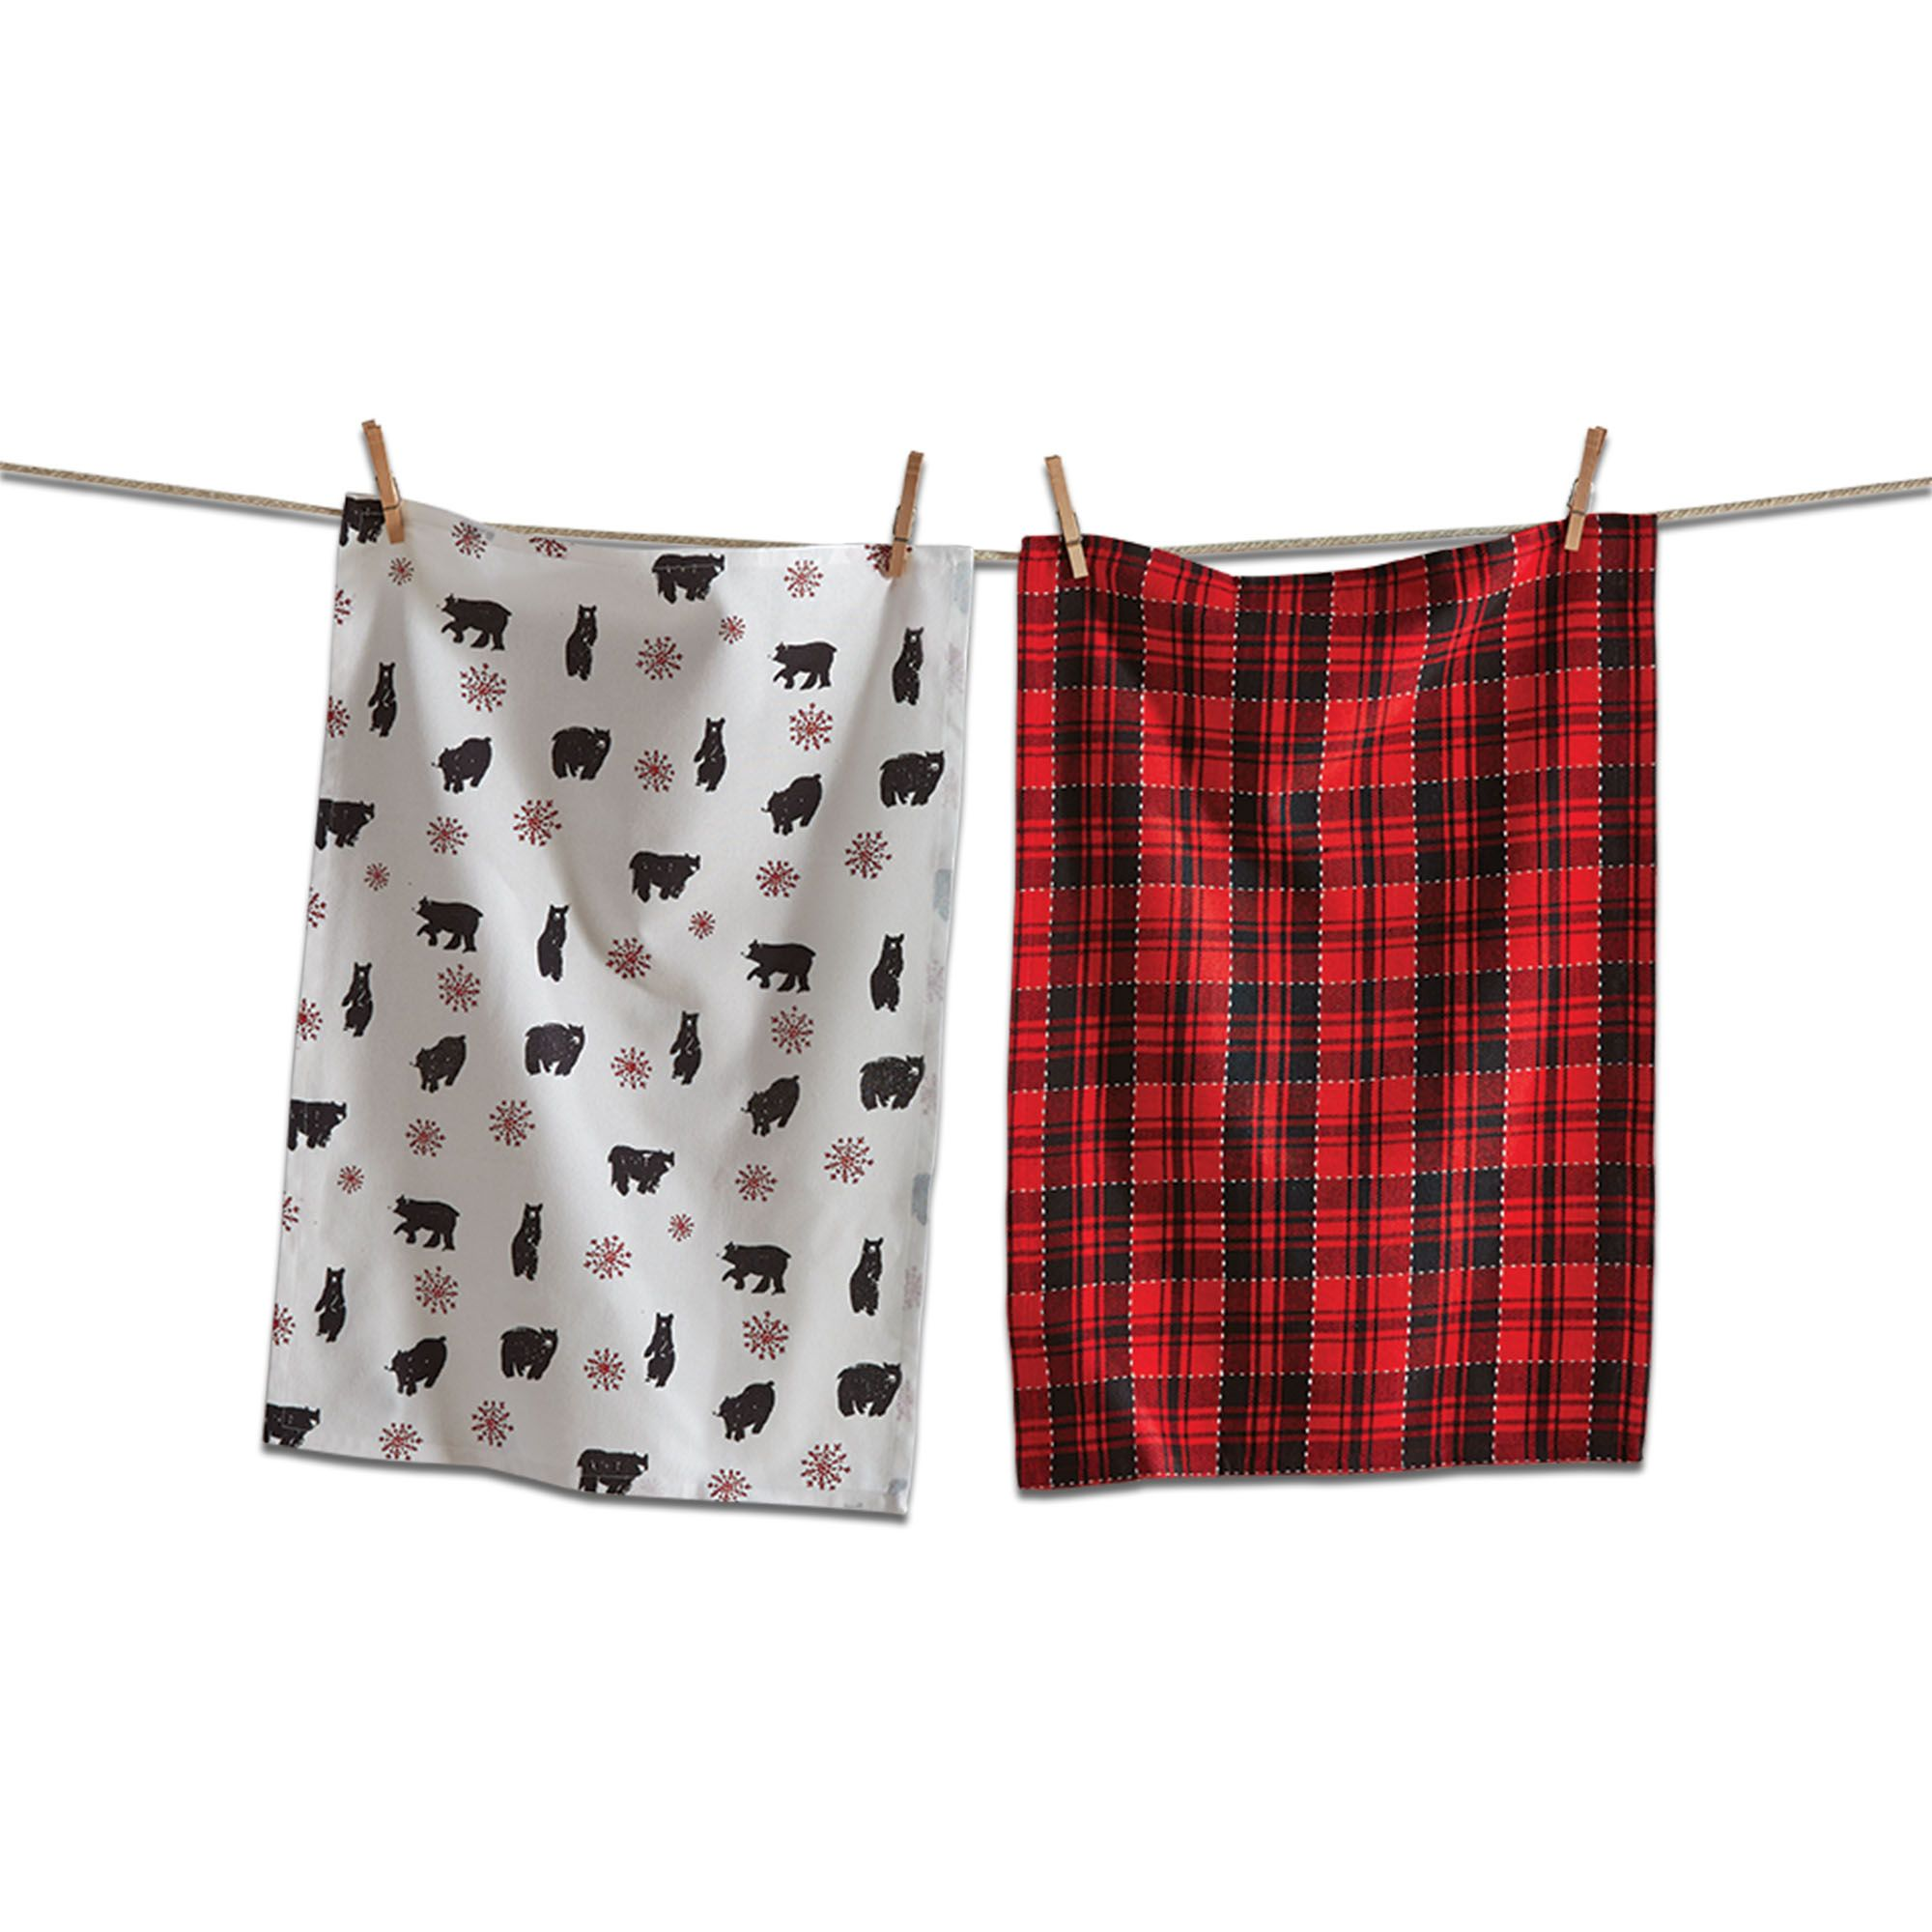 Lodge Bear Dishtowel S 2 Fall Holiday 2019 Black Cotton